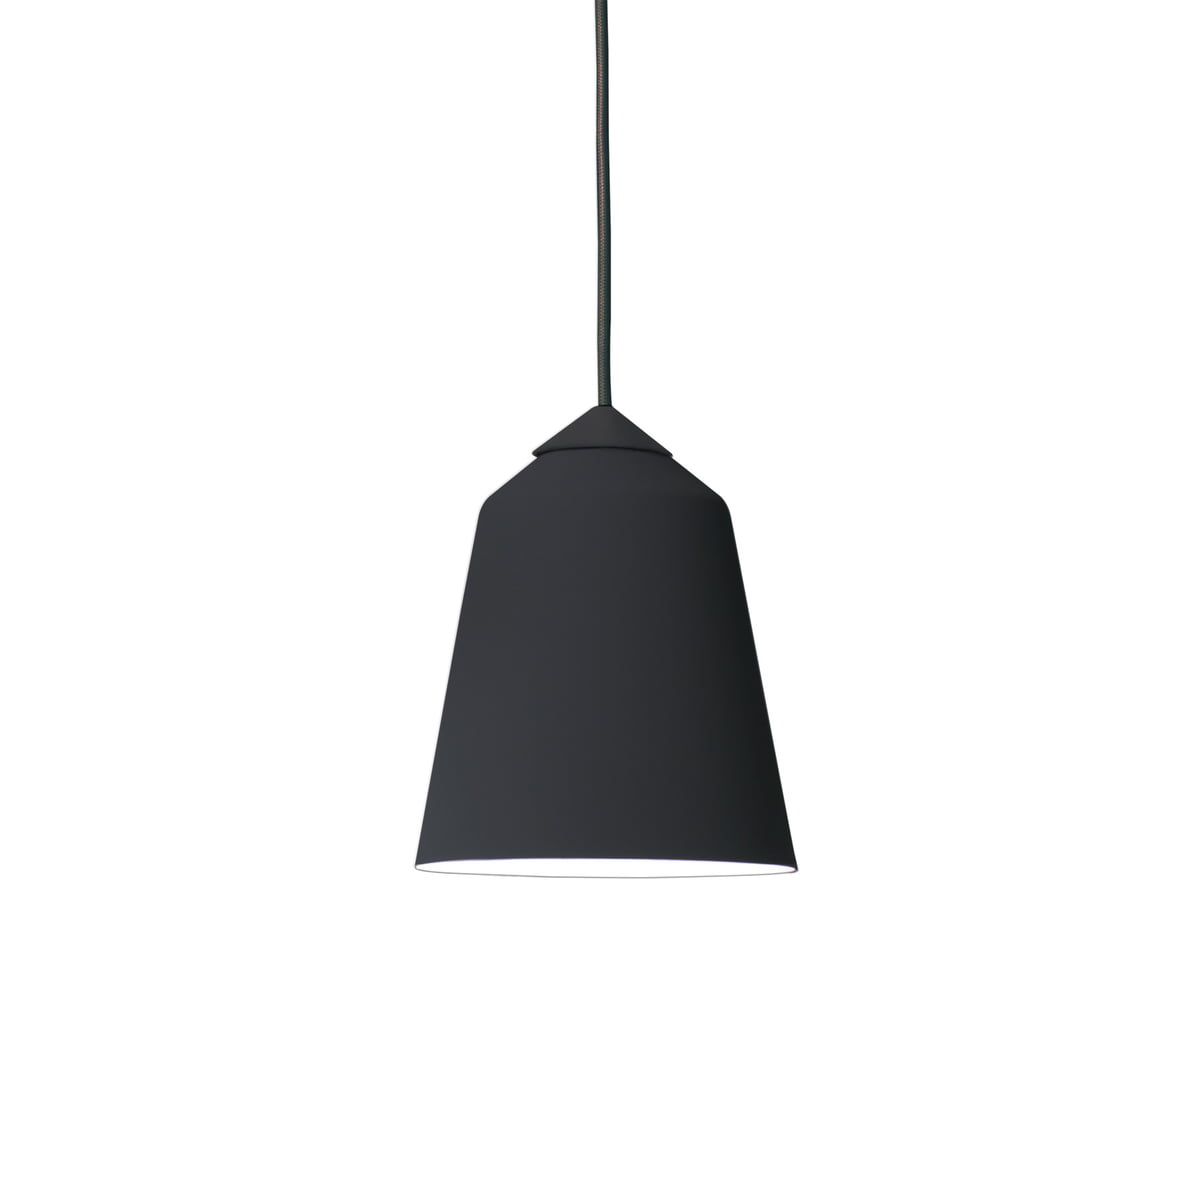 Circus pendant lamp by innermost in the shop innermost circus 15 suspension light black aloadofball Choice Image